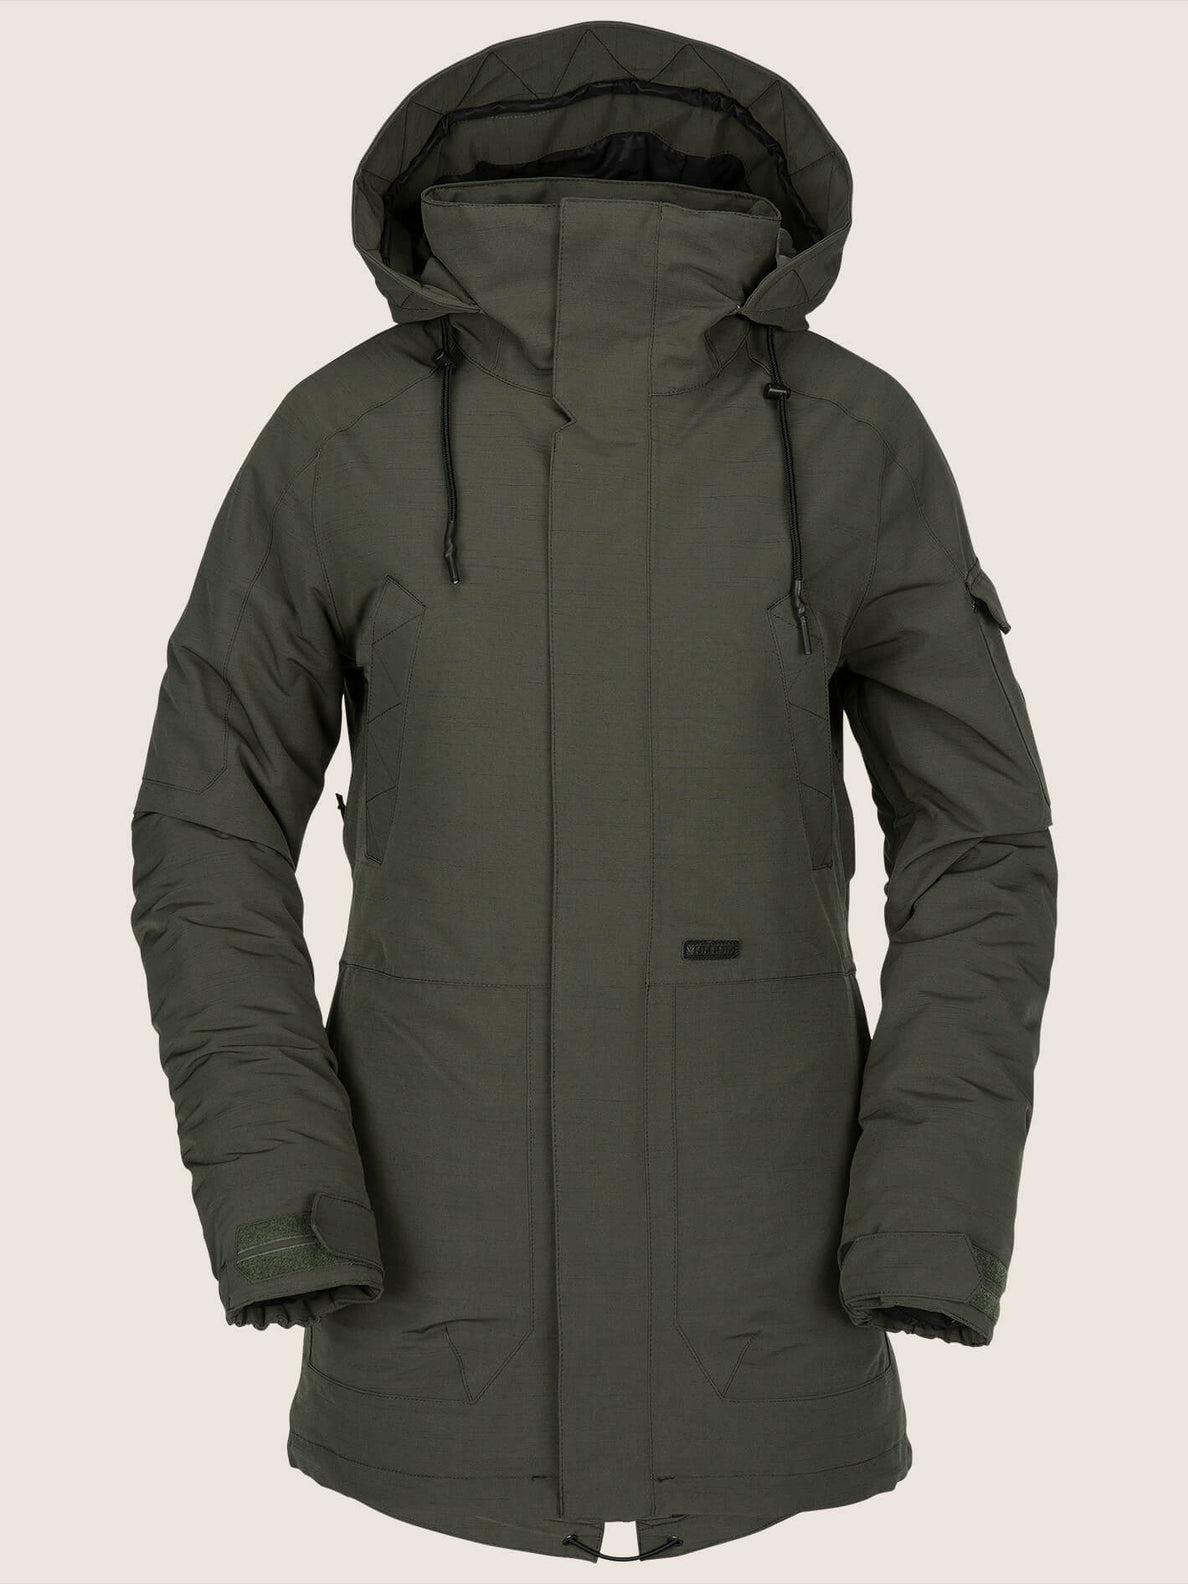 Shrine Insulated Jacket In Snow Forest, Front View